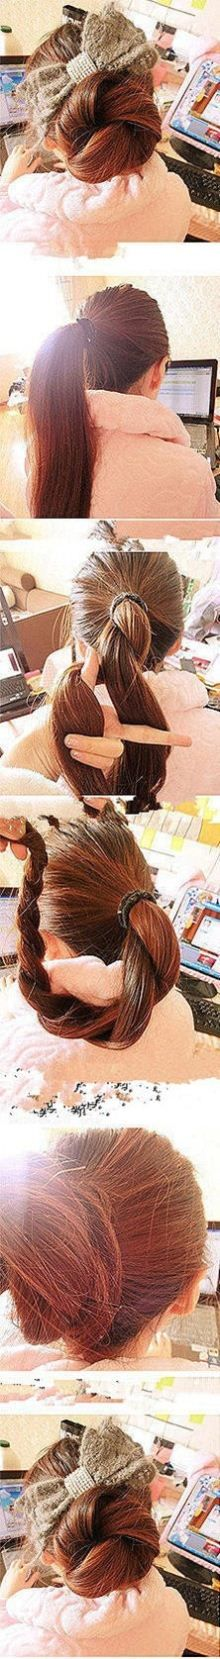 Perfect especially if you're doing a bun with layered hair!